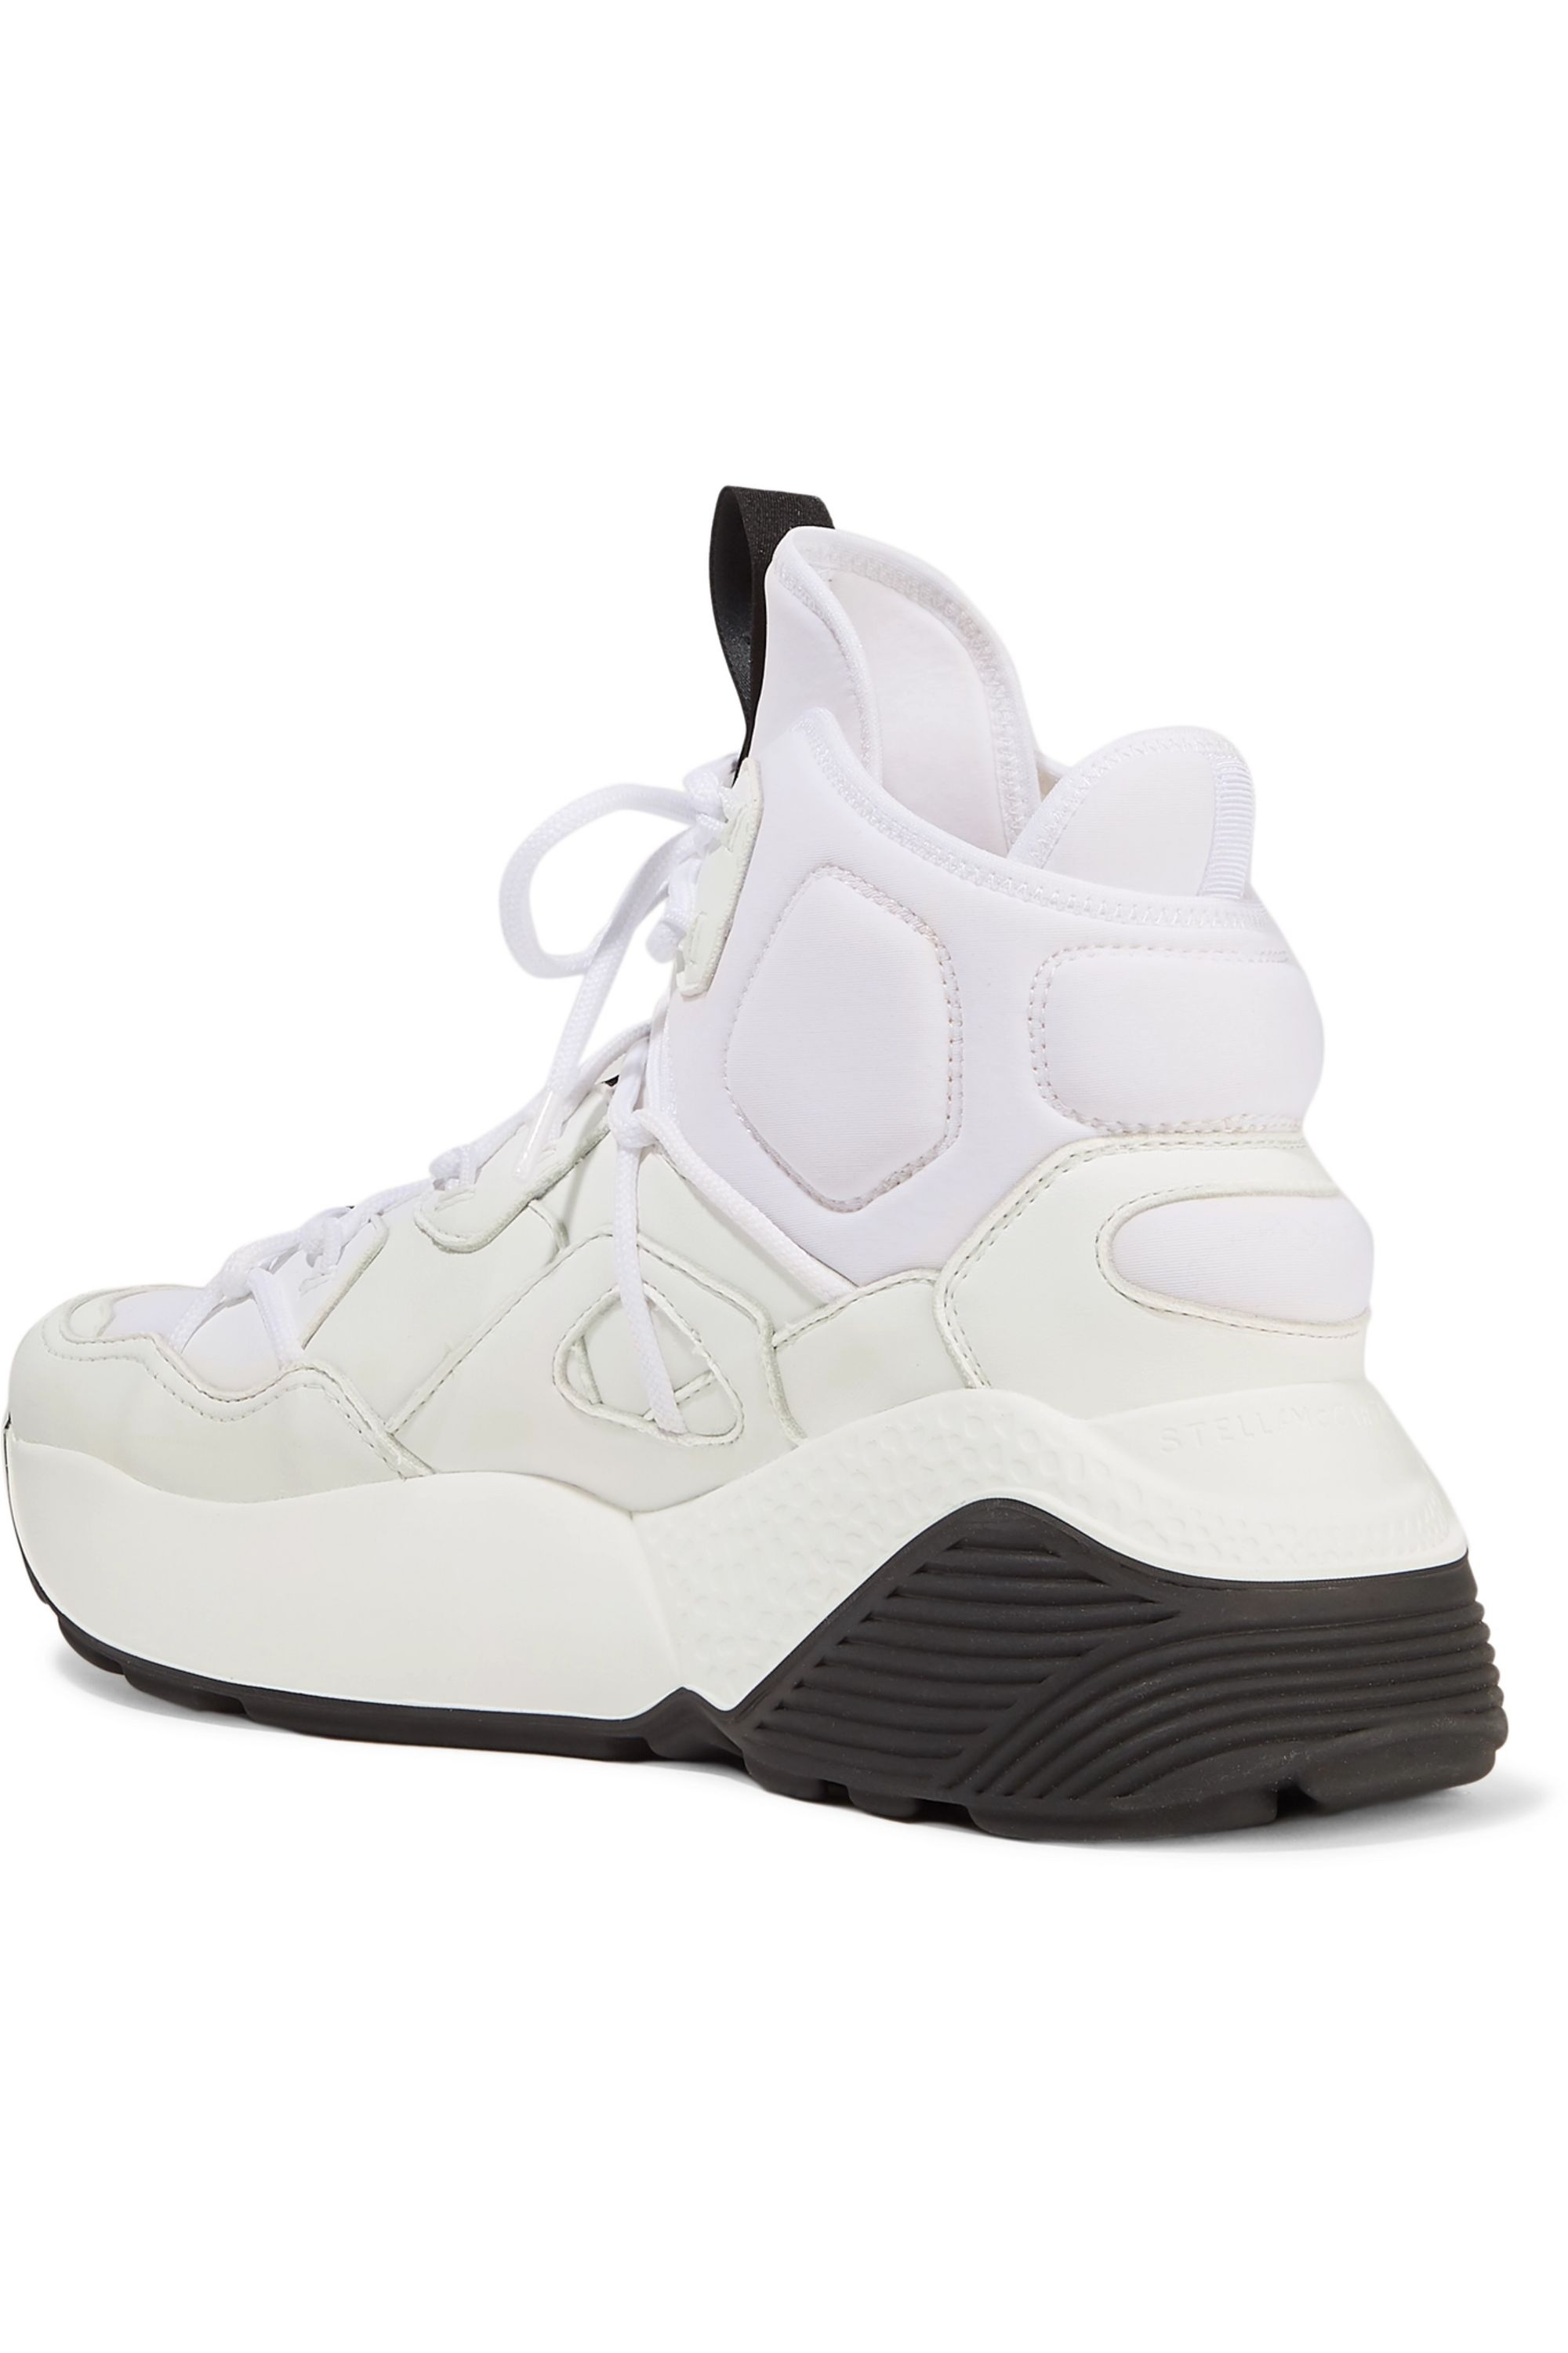 Stella McCartney Faux leather and neoprene sneakers